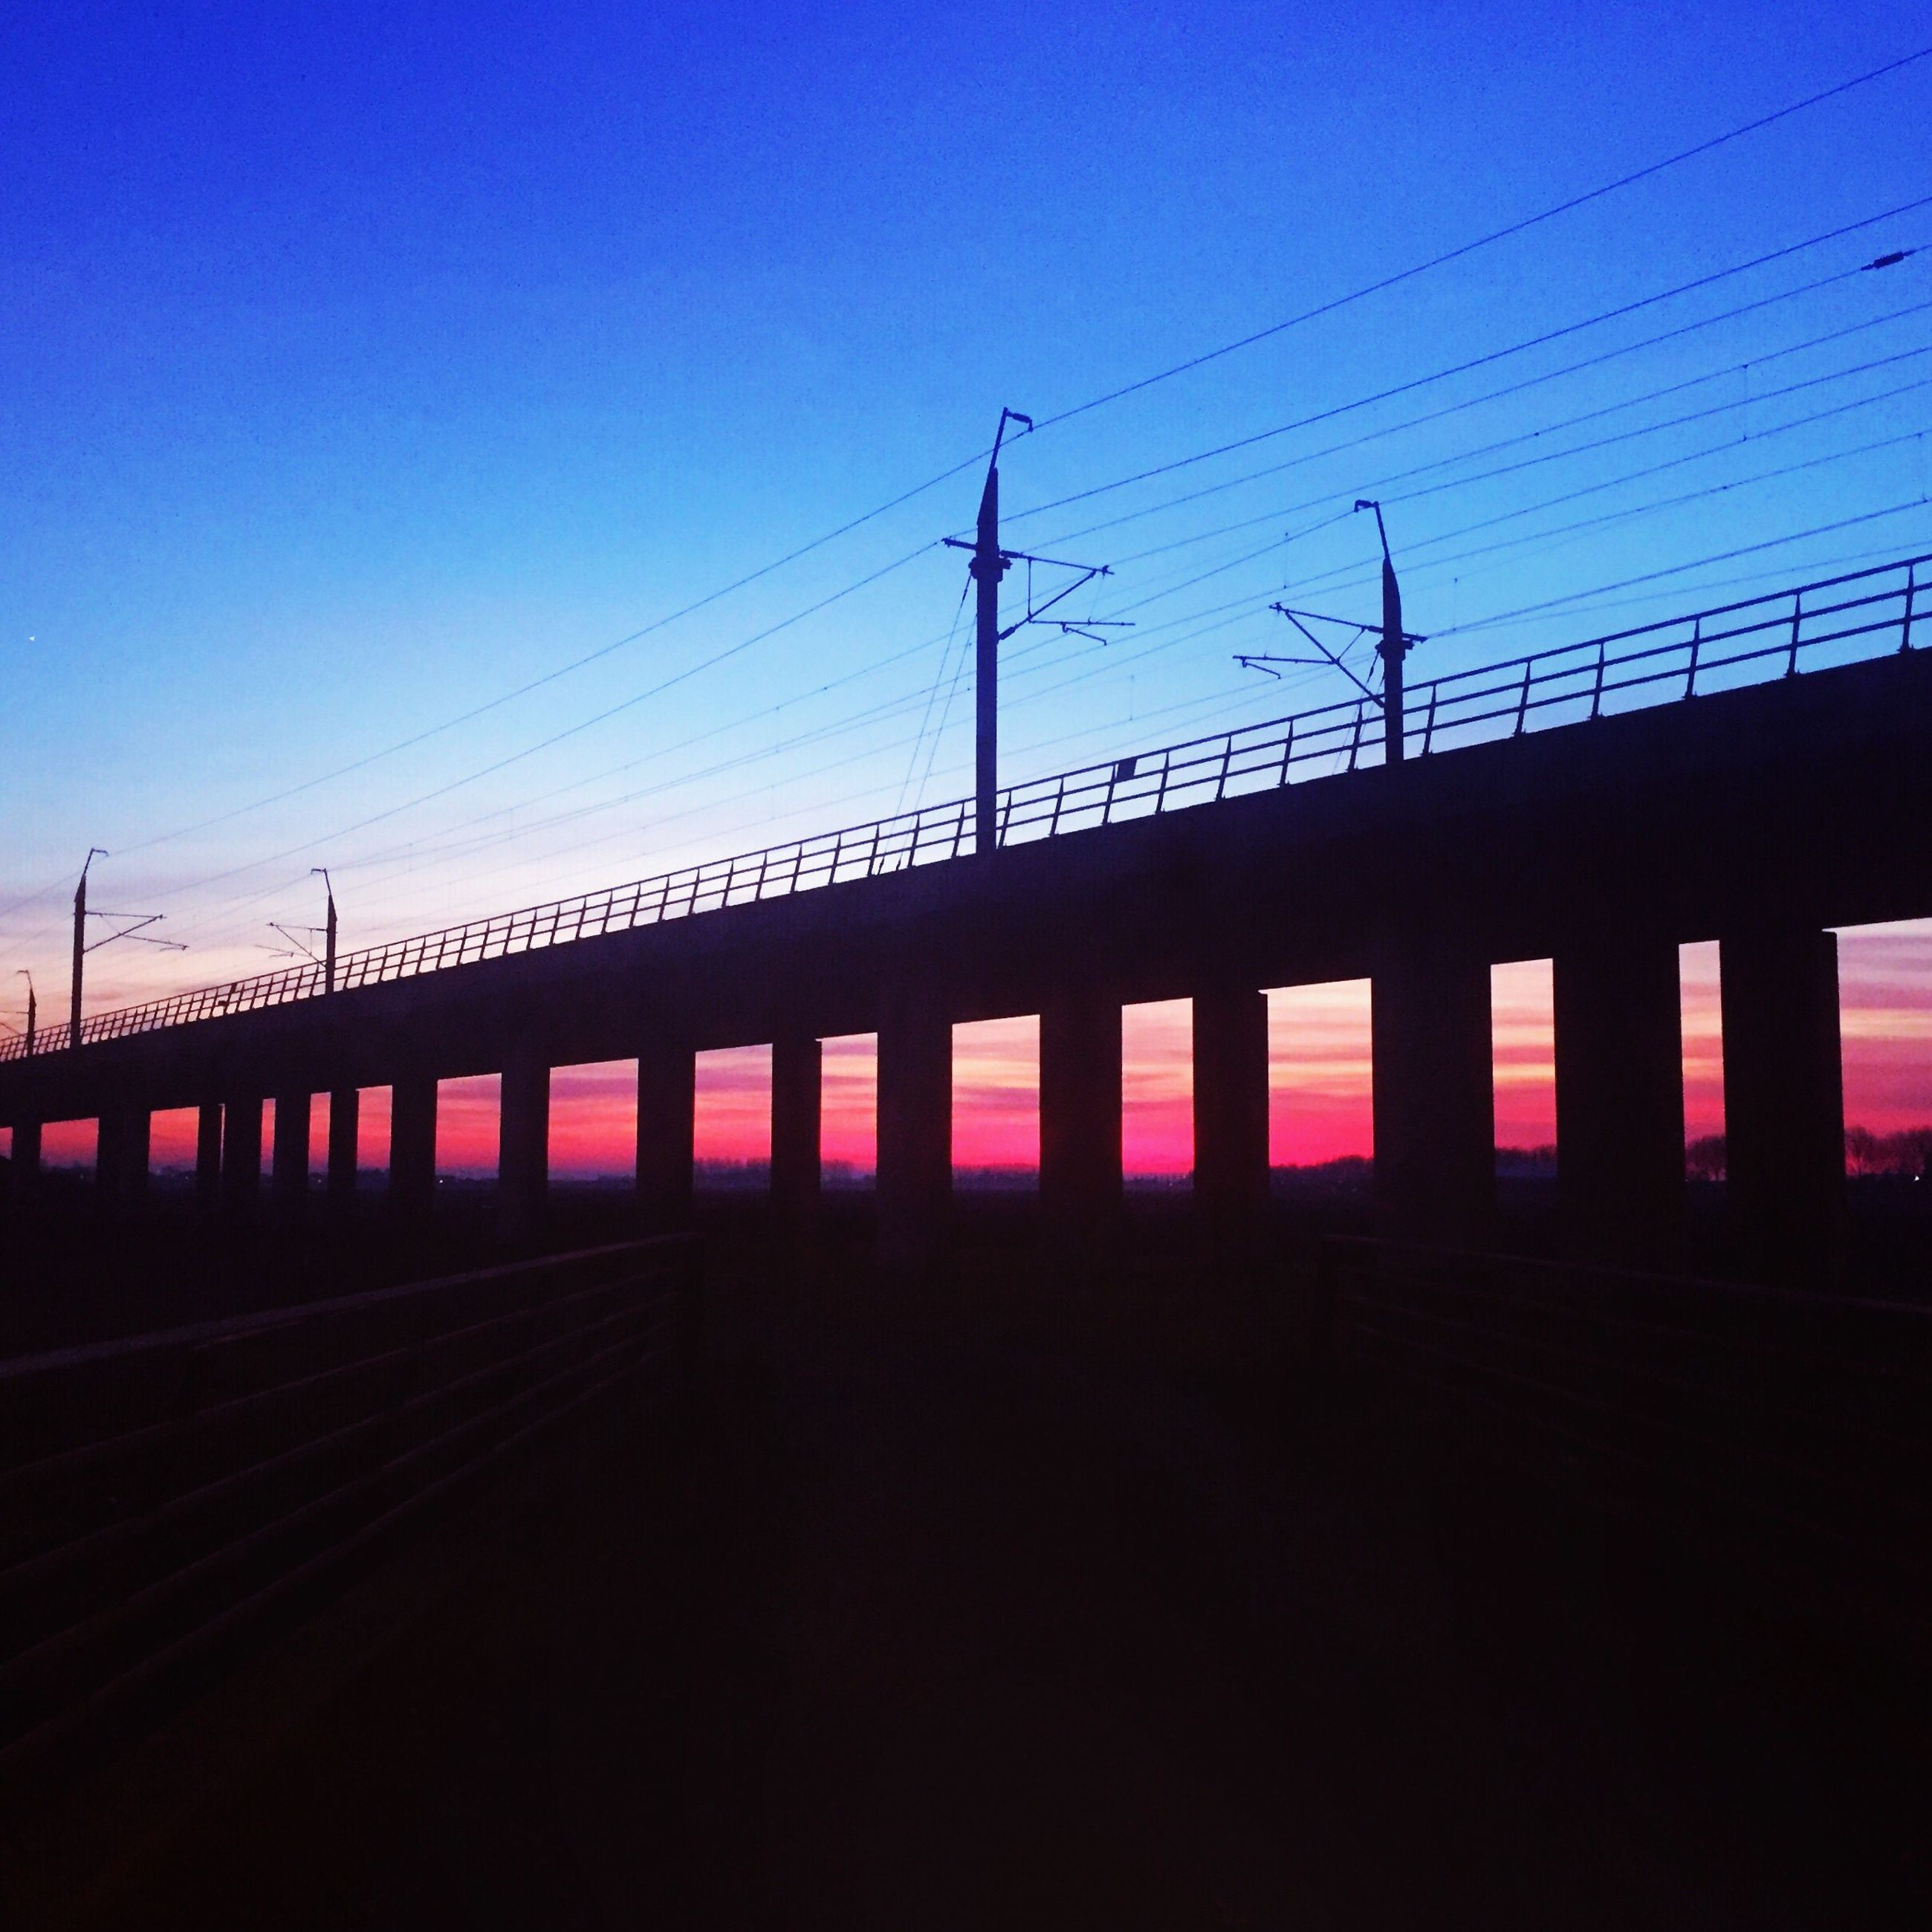 connection, sky, transportation, bridge - man made structure, built structure, power line, silhouette, clear sky, no people, outdoors, electricity, sunset, power supply, architecture, day